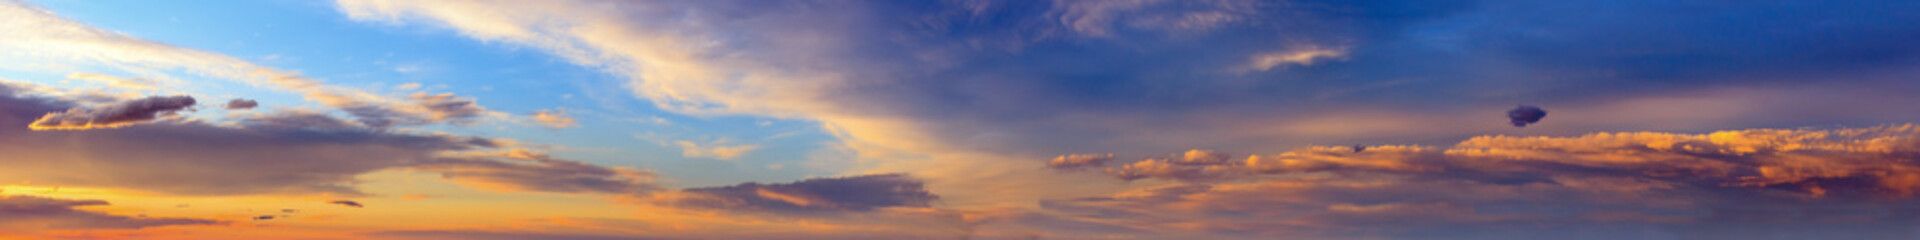 Wall Mural - Sunset sky panorama with clouds